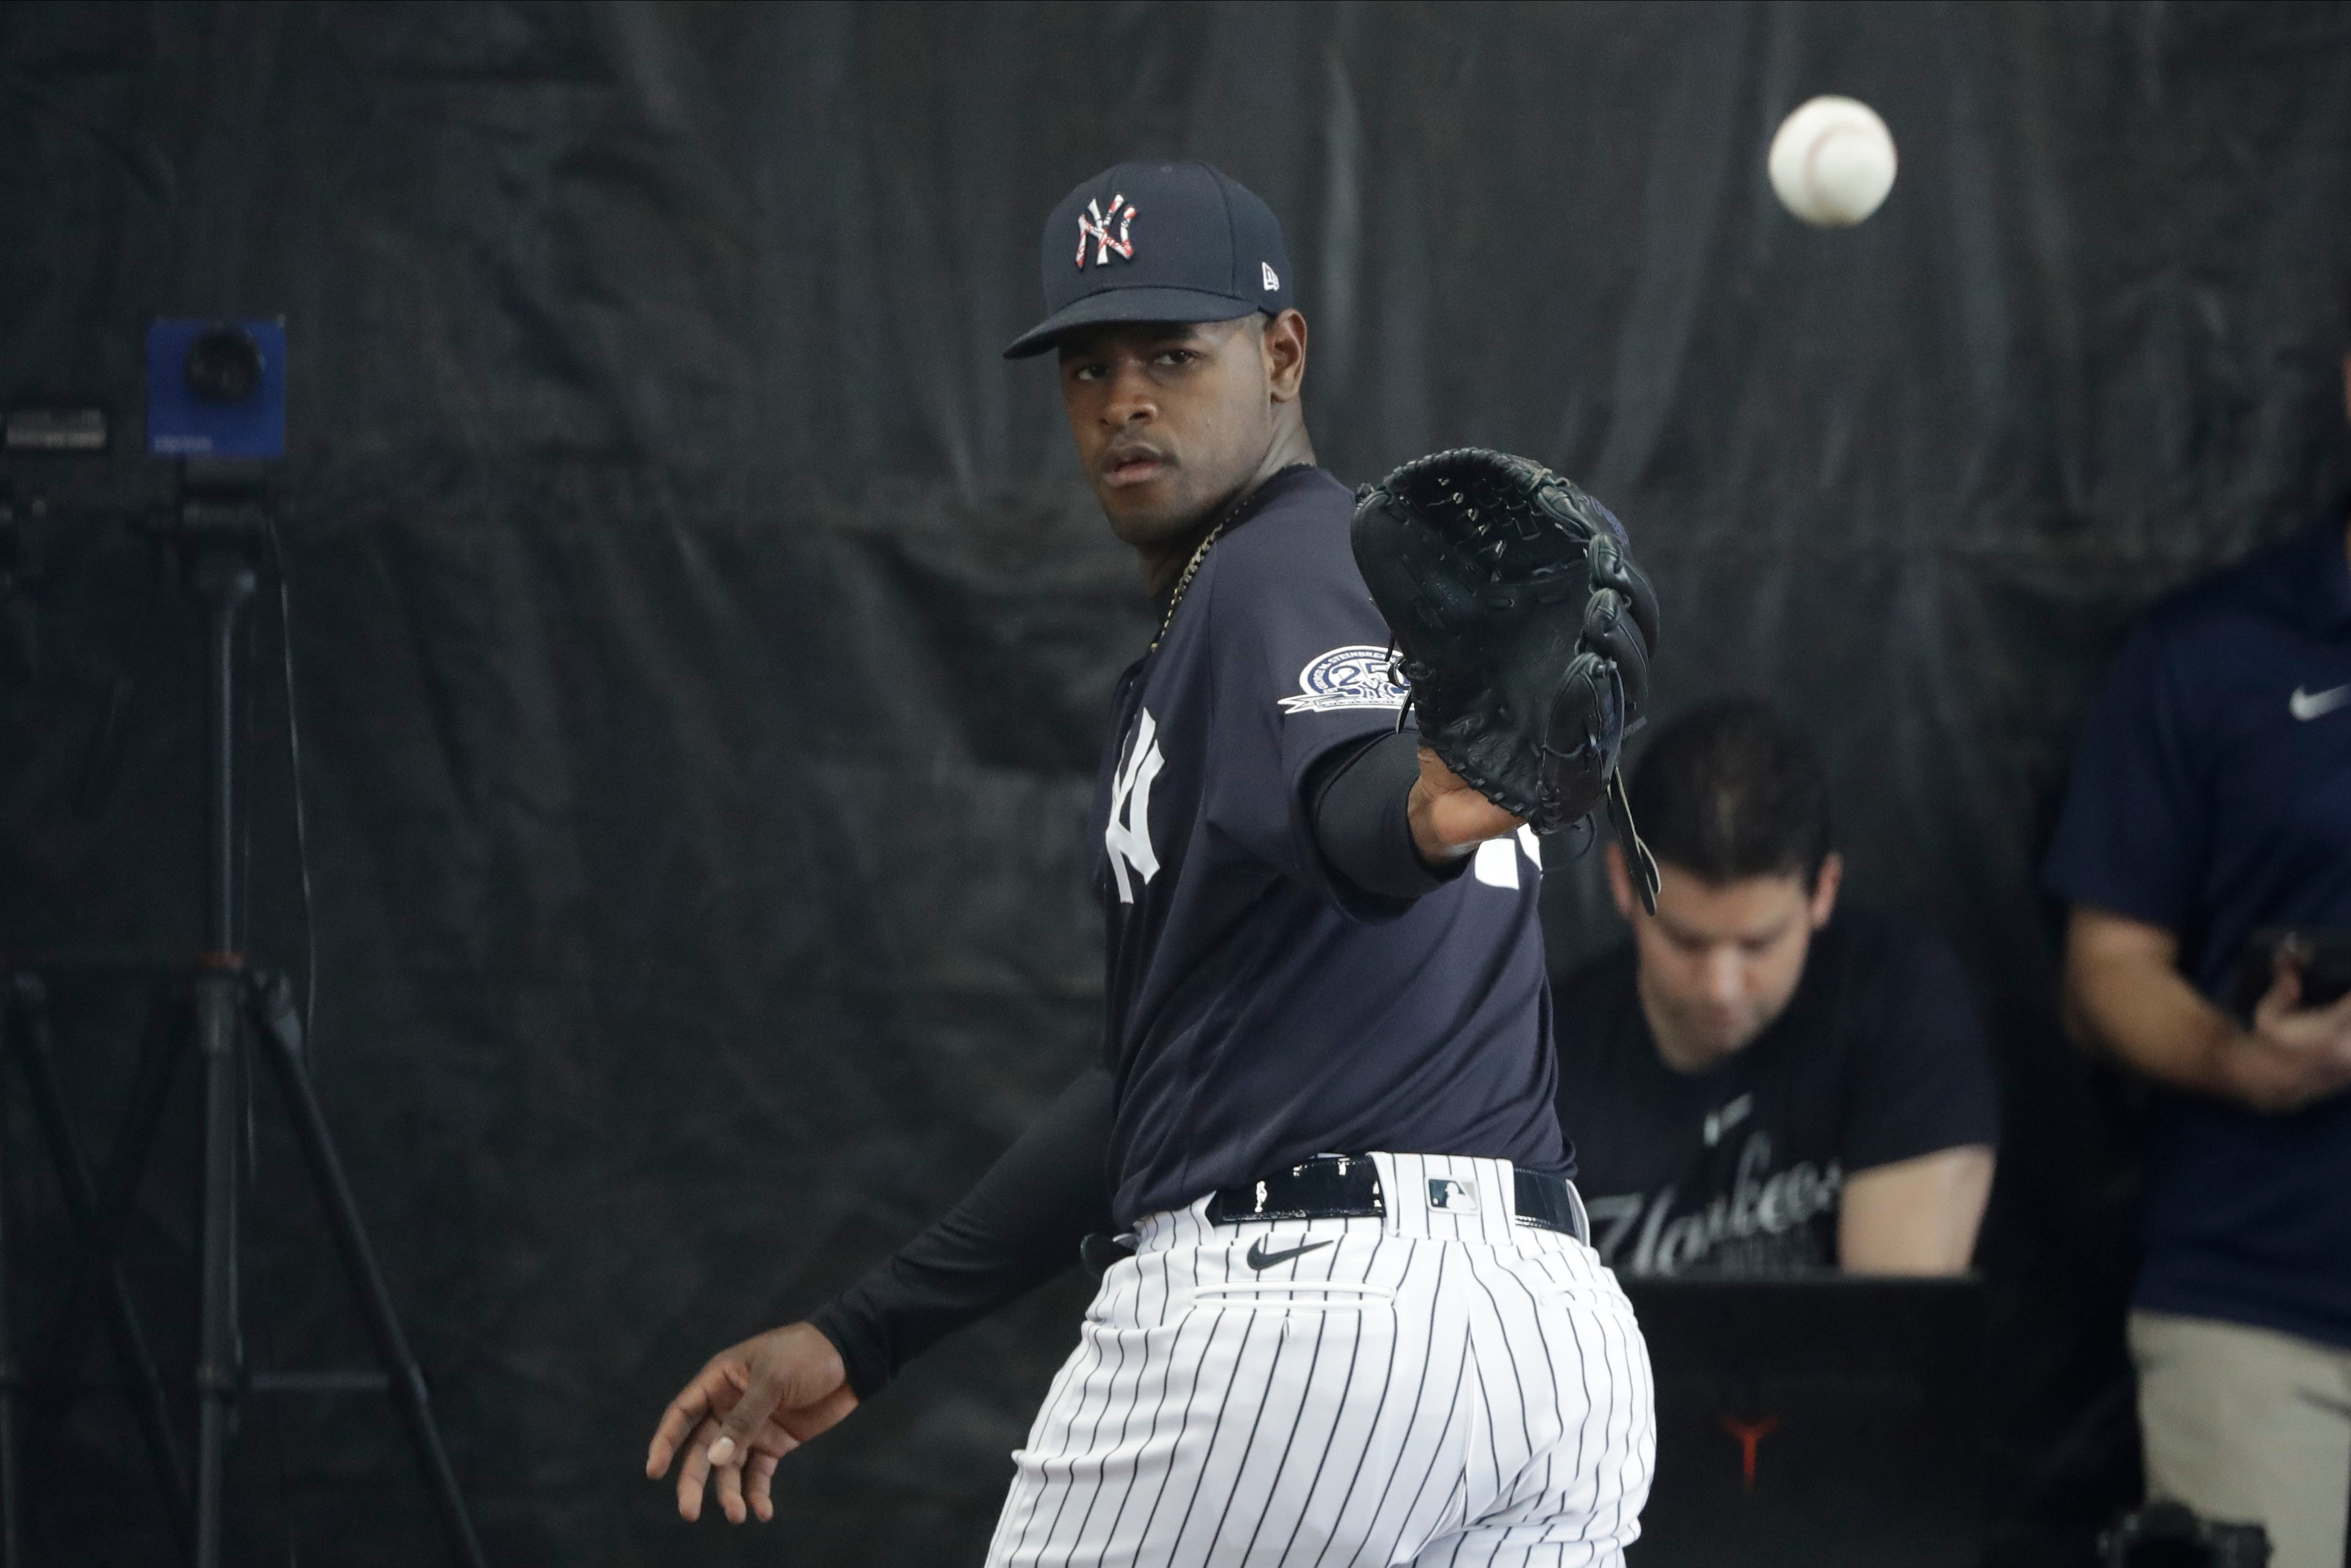 Yankees starter Luis Severino to miss 2020 season due to Tommy John elbow surgery